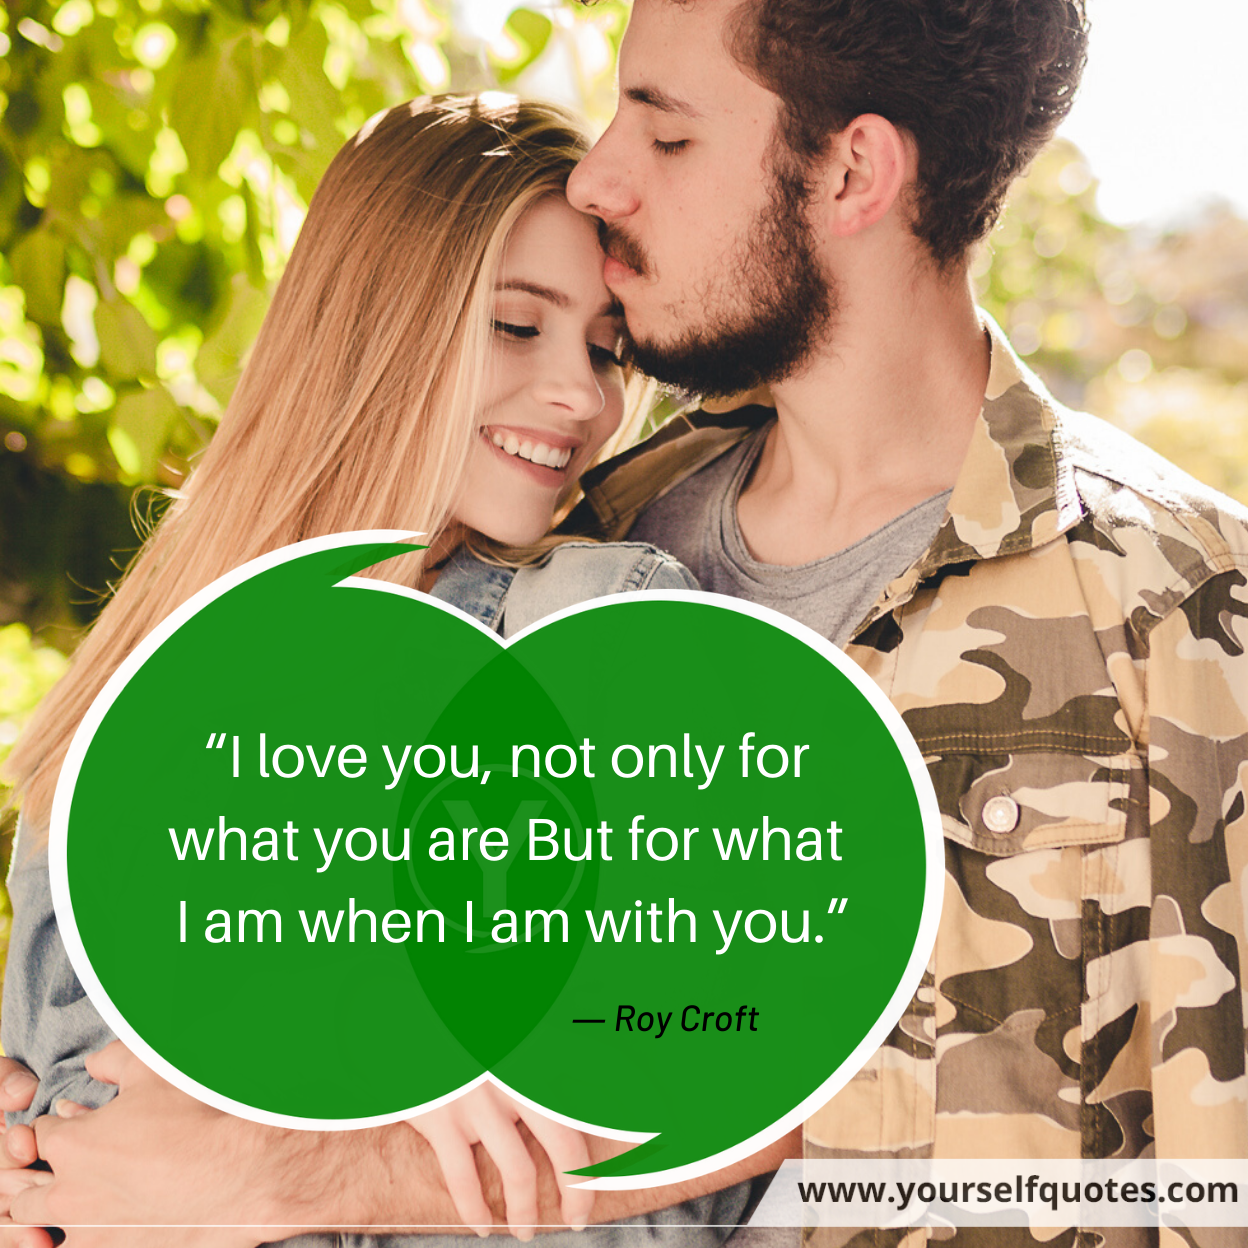 Quotes on Love byRoy Croft